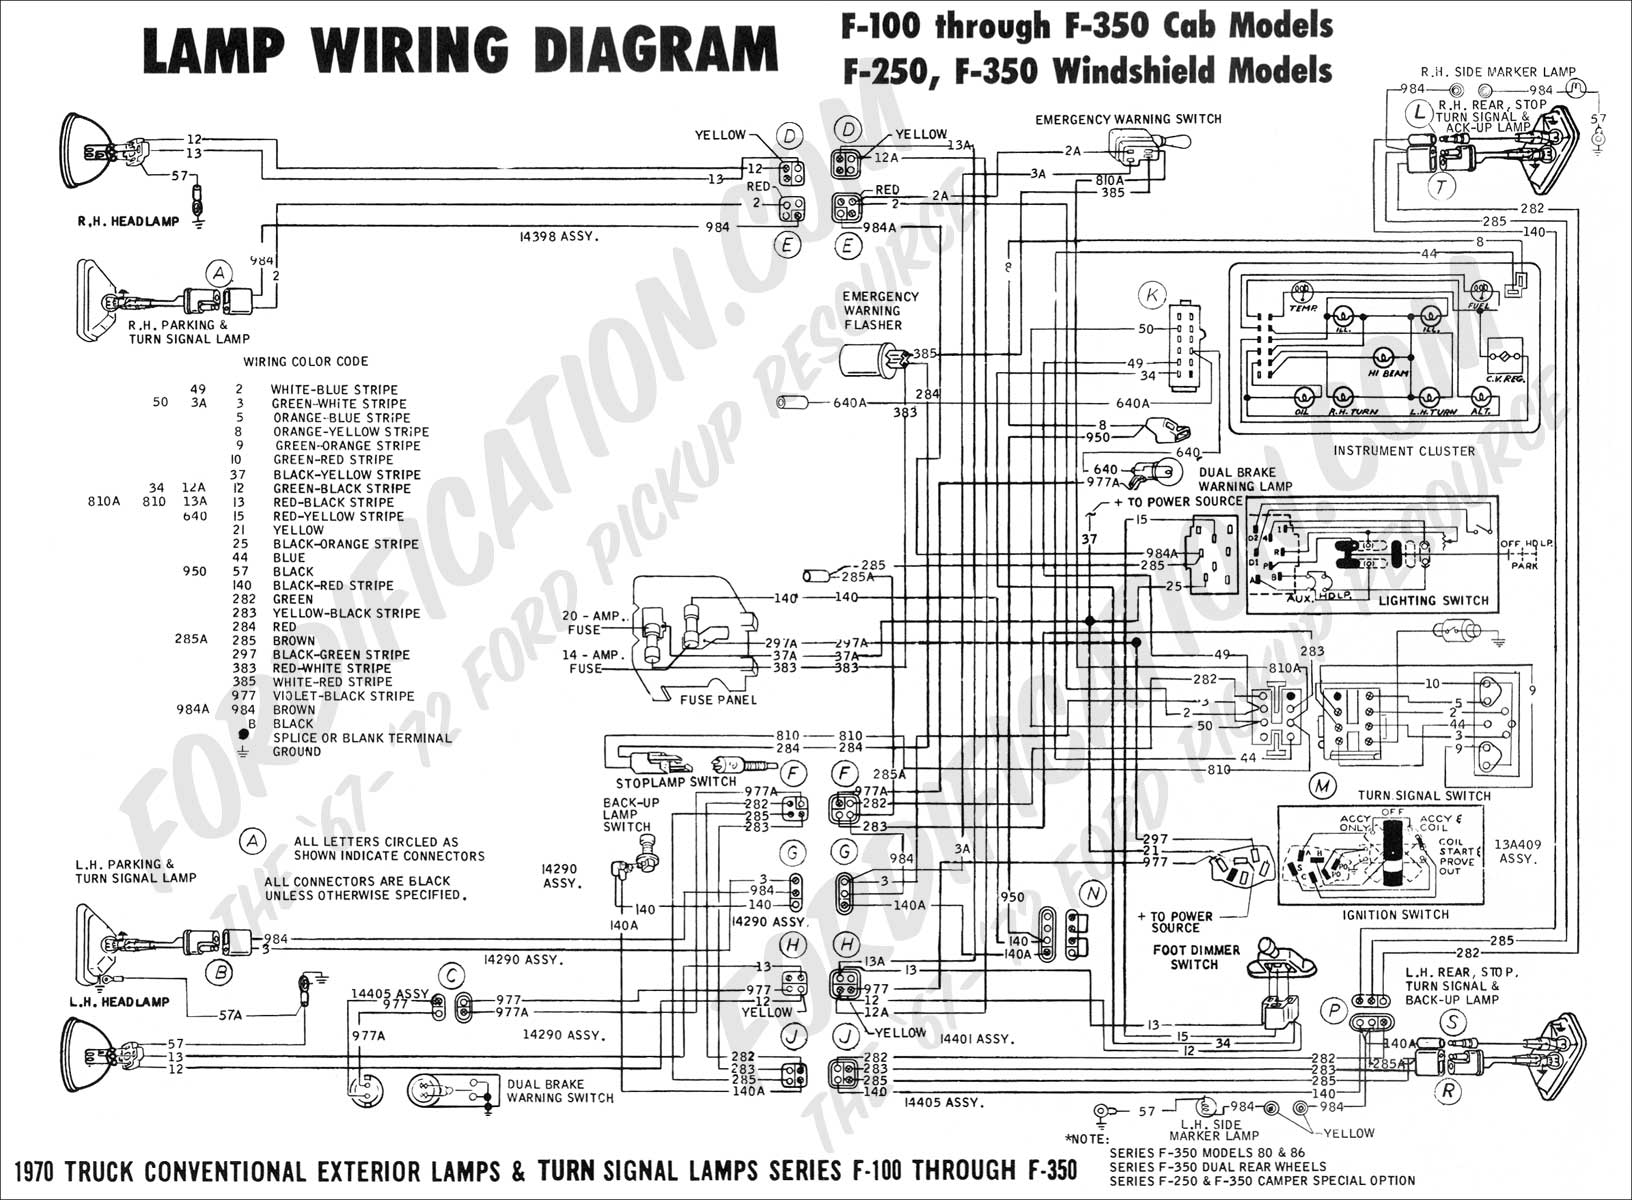 2013 kawasaki ksr wiring diagram 2013 wiring diagrams online 2013 ford wiring diagram 2013 wiring diagrams